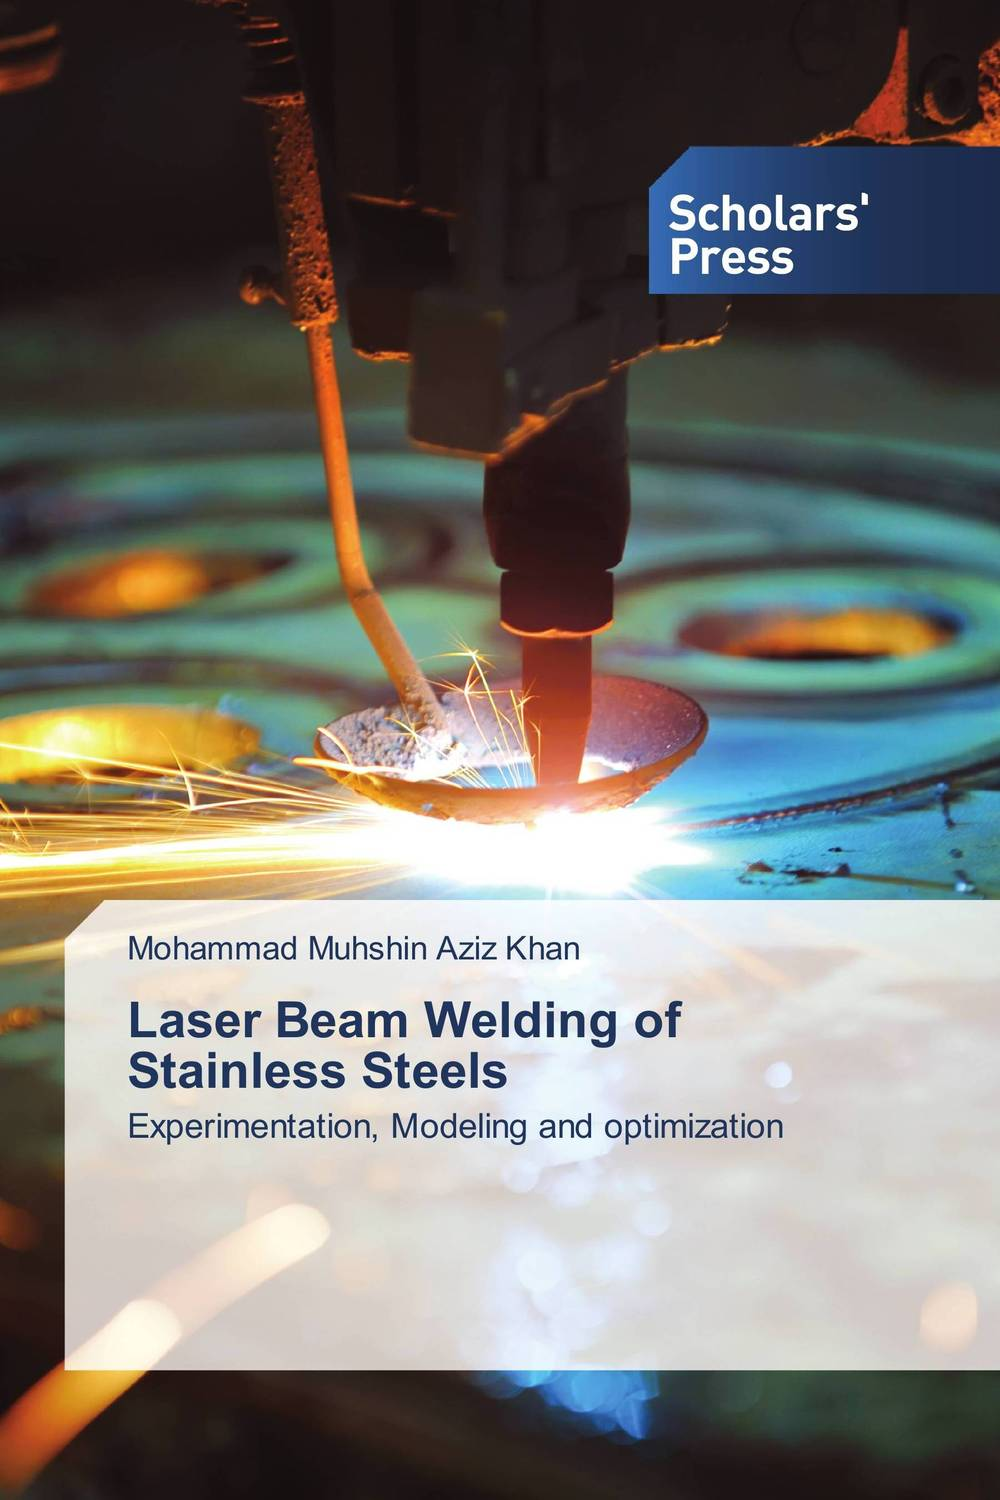 Laser Beam Welding of Stainless Steels laser beam welding of stainless steels